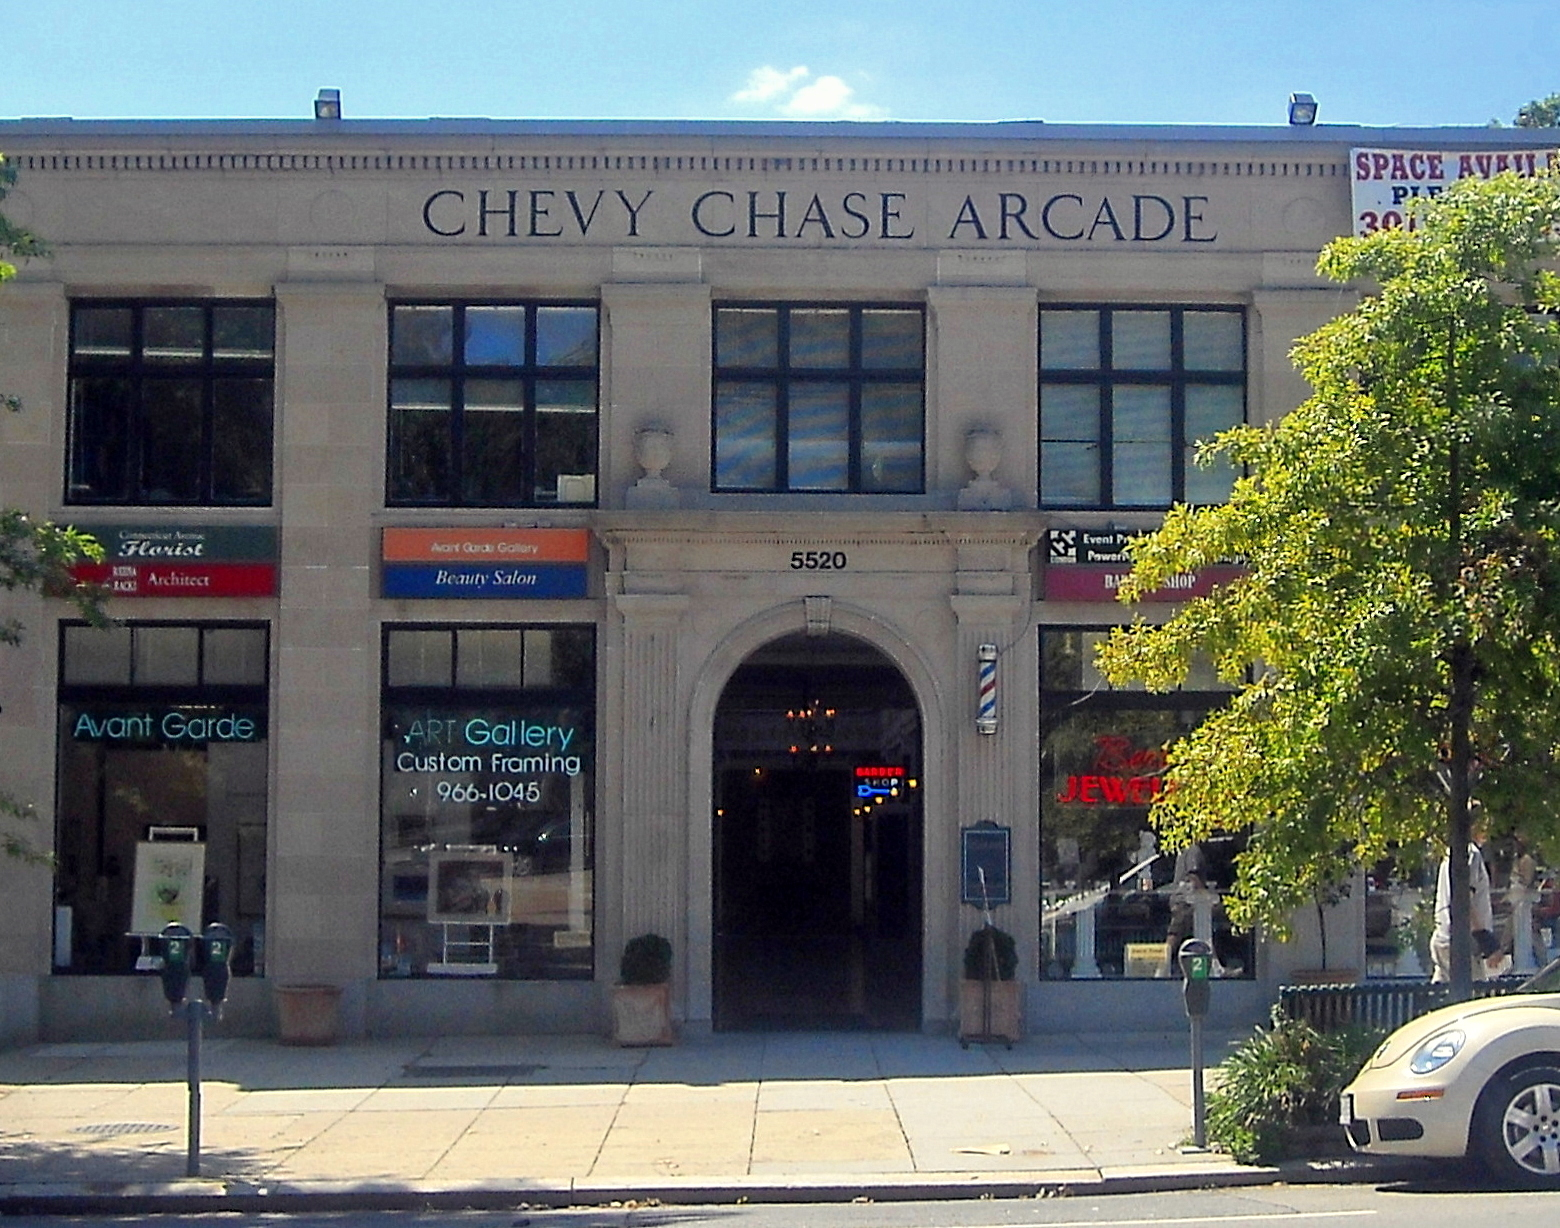 A view of the arcade's front facade in 2008 ((By AgnosticPreachersKid (Own work) [CC BY-SA 3.0 (http://creativecommons.org/licenses/by-sa/3.0) or GFDL (http://www.gnu.org/copyleft/fdl.html)], via Wikimedia Commons))